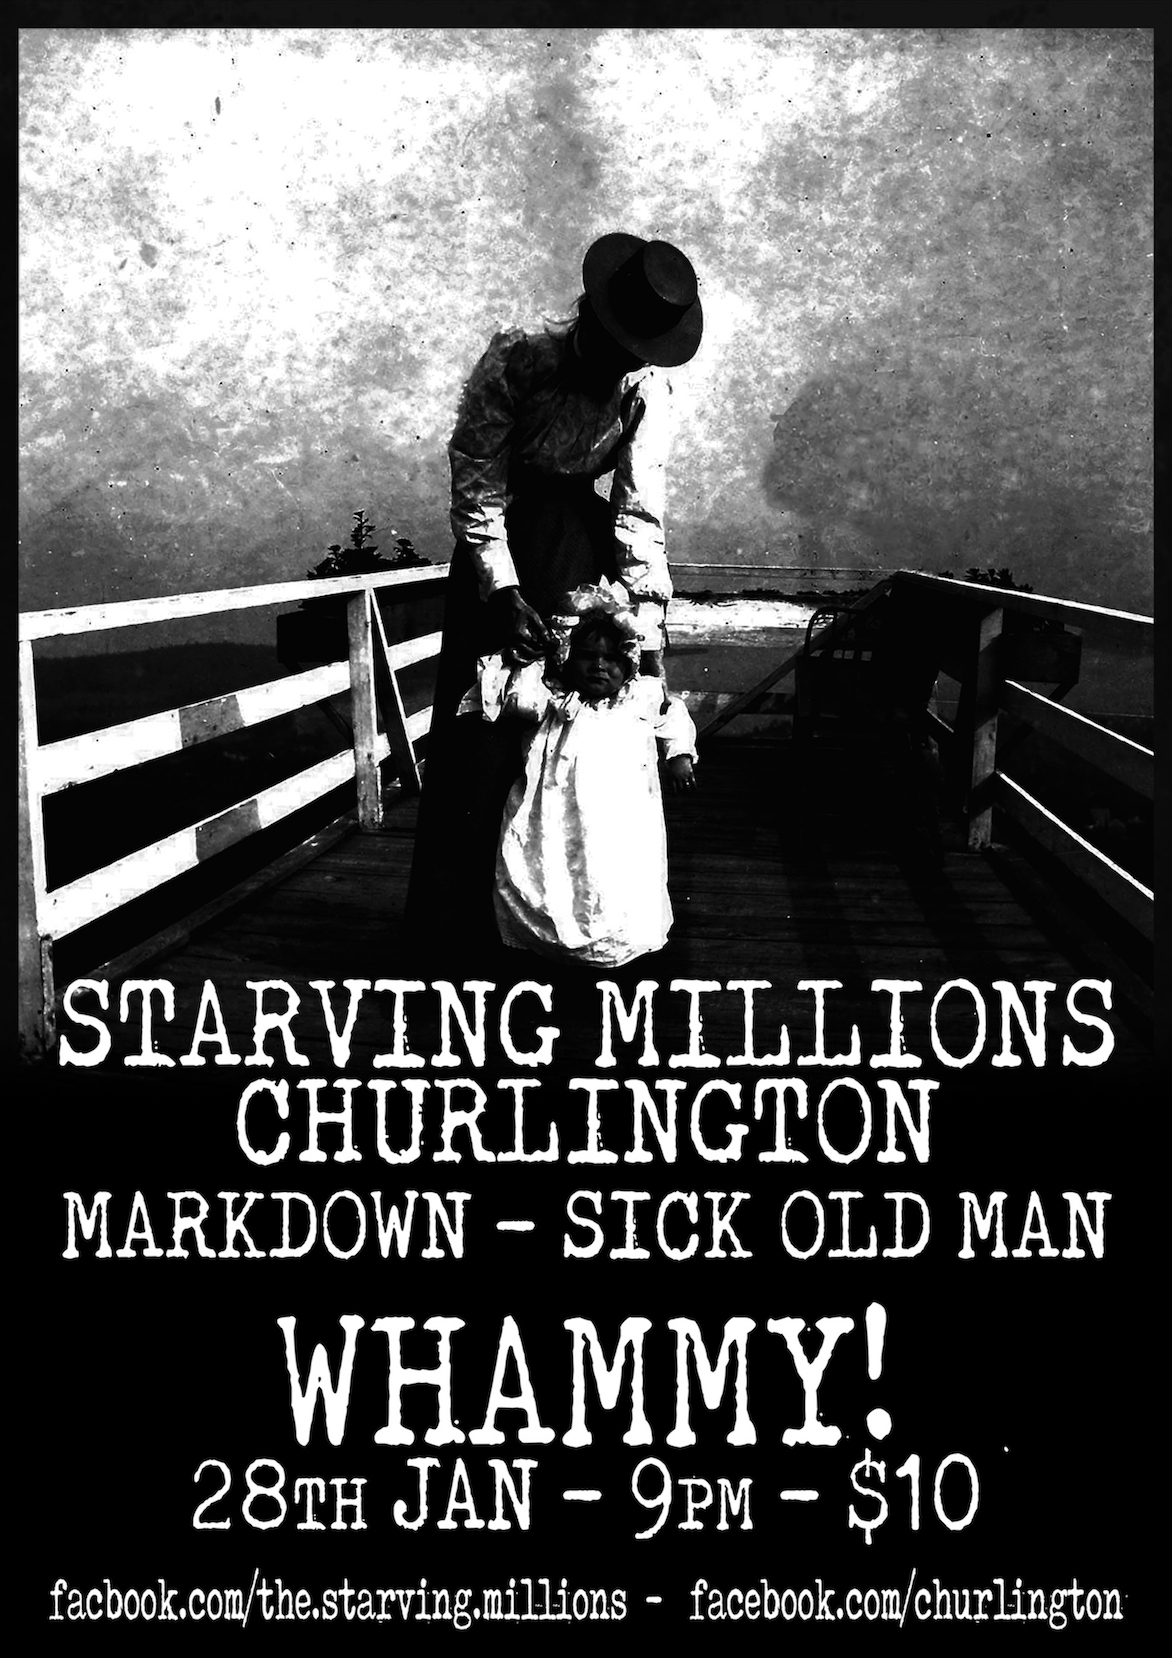 Starving Millions and Churlington